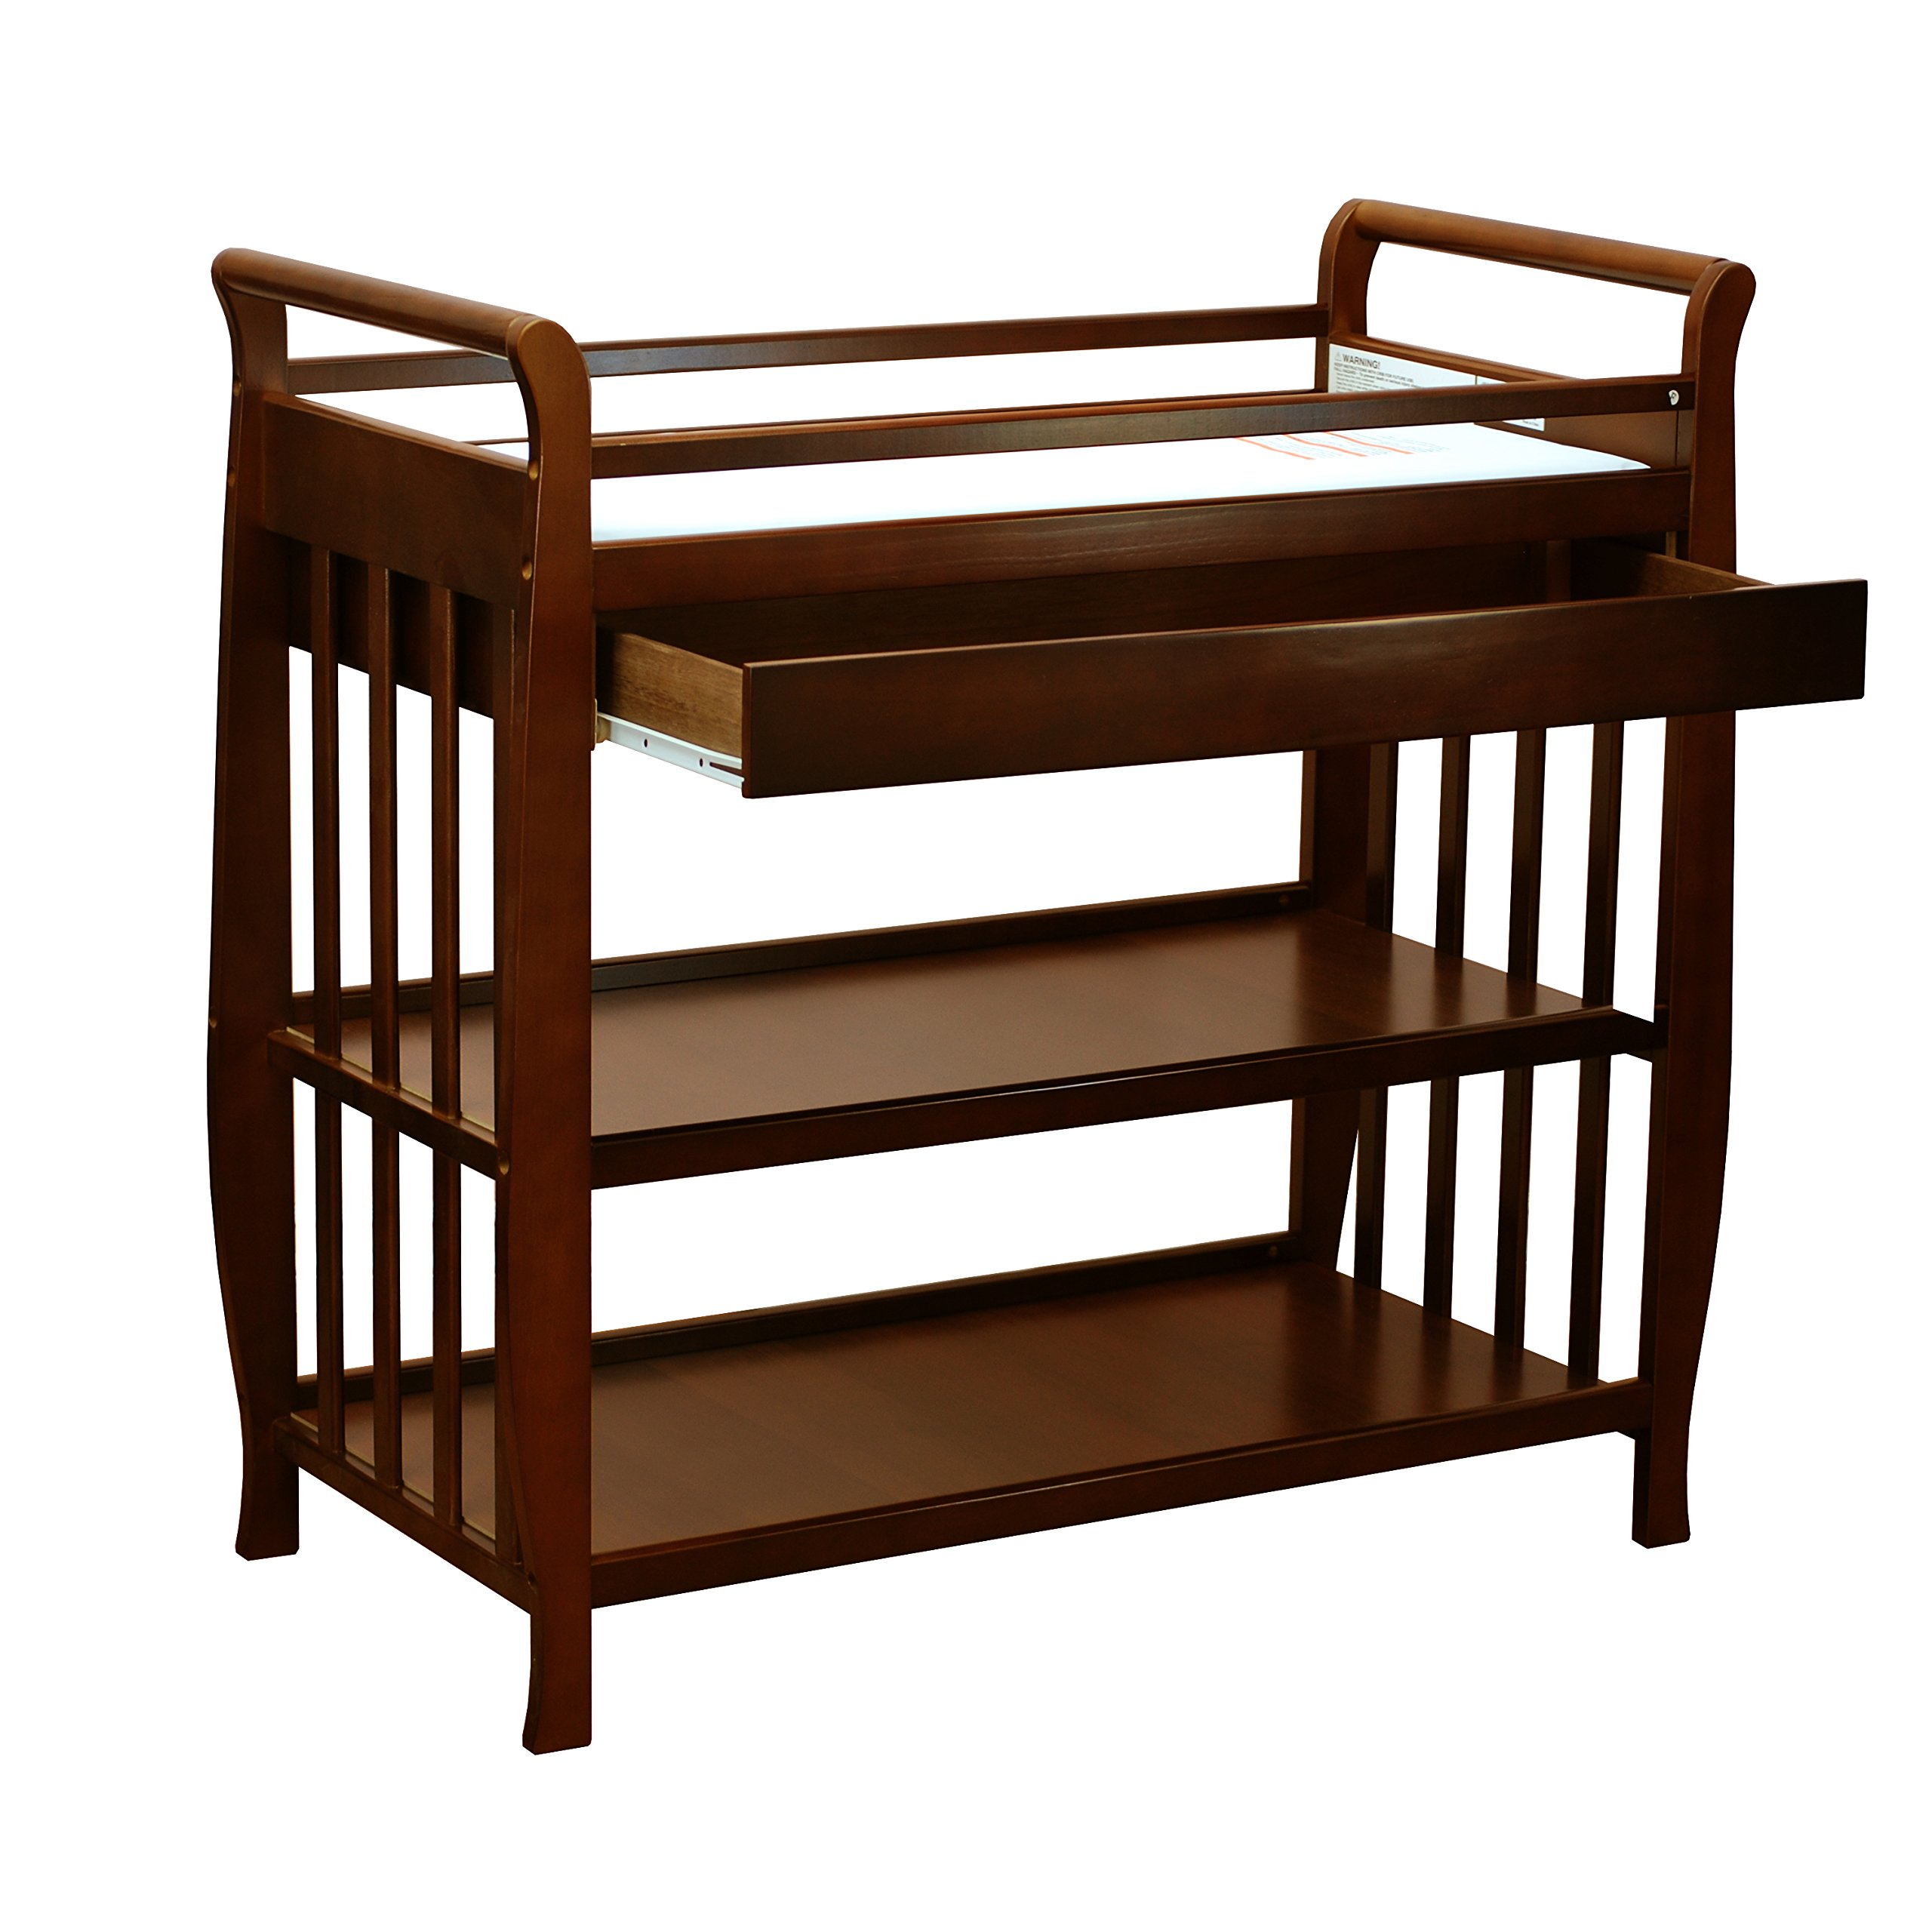 Athena Nadia Baby Changing Table, Espresso by Athena